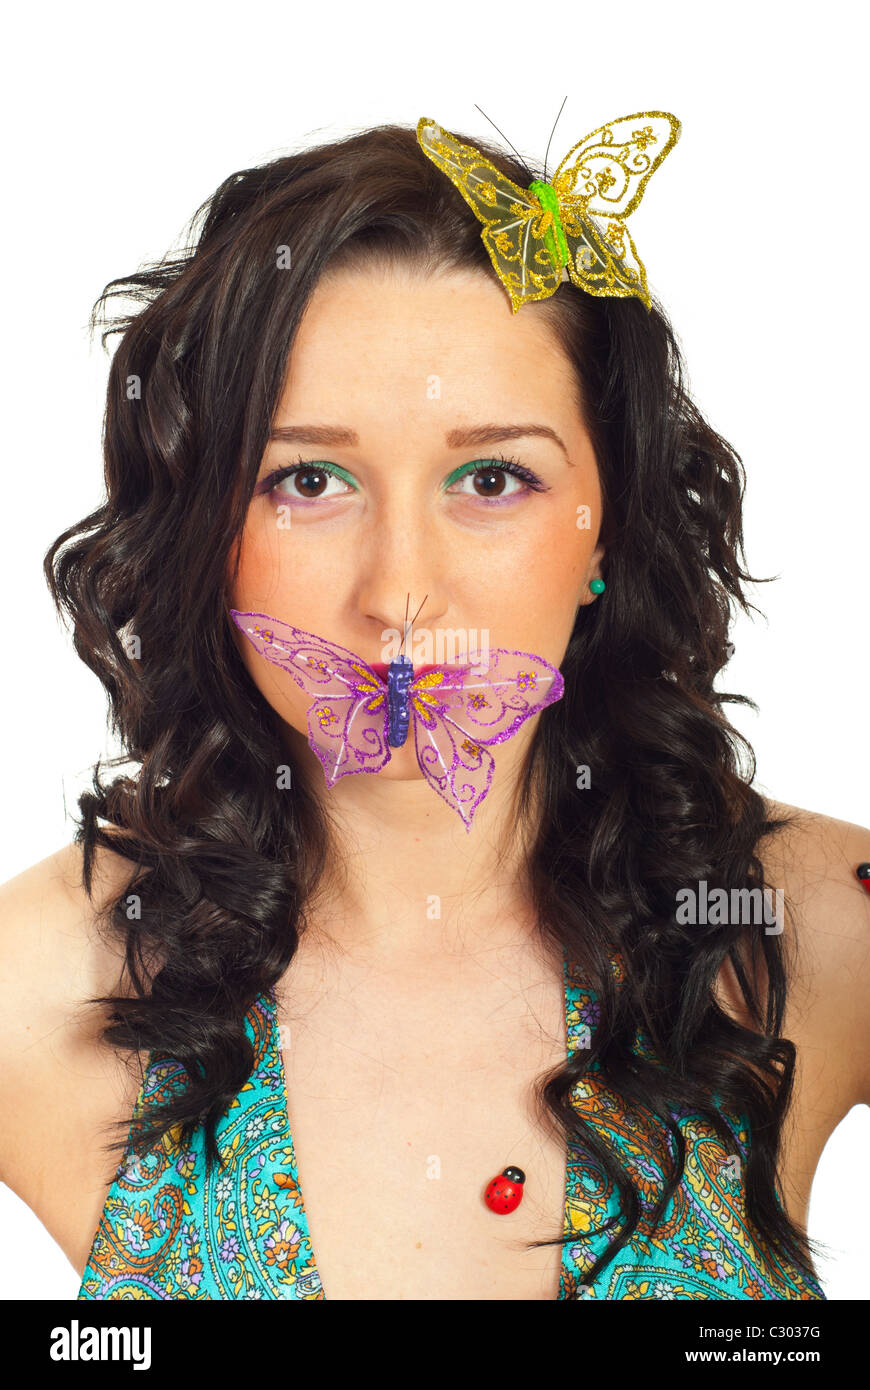 beauty woman with butterfly on her lips and hair isolated on white  background 9d901fc99